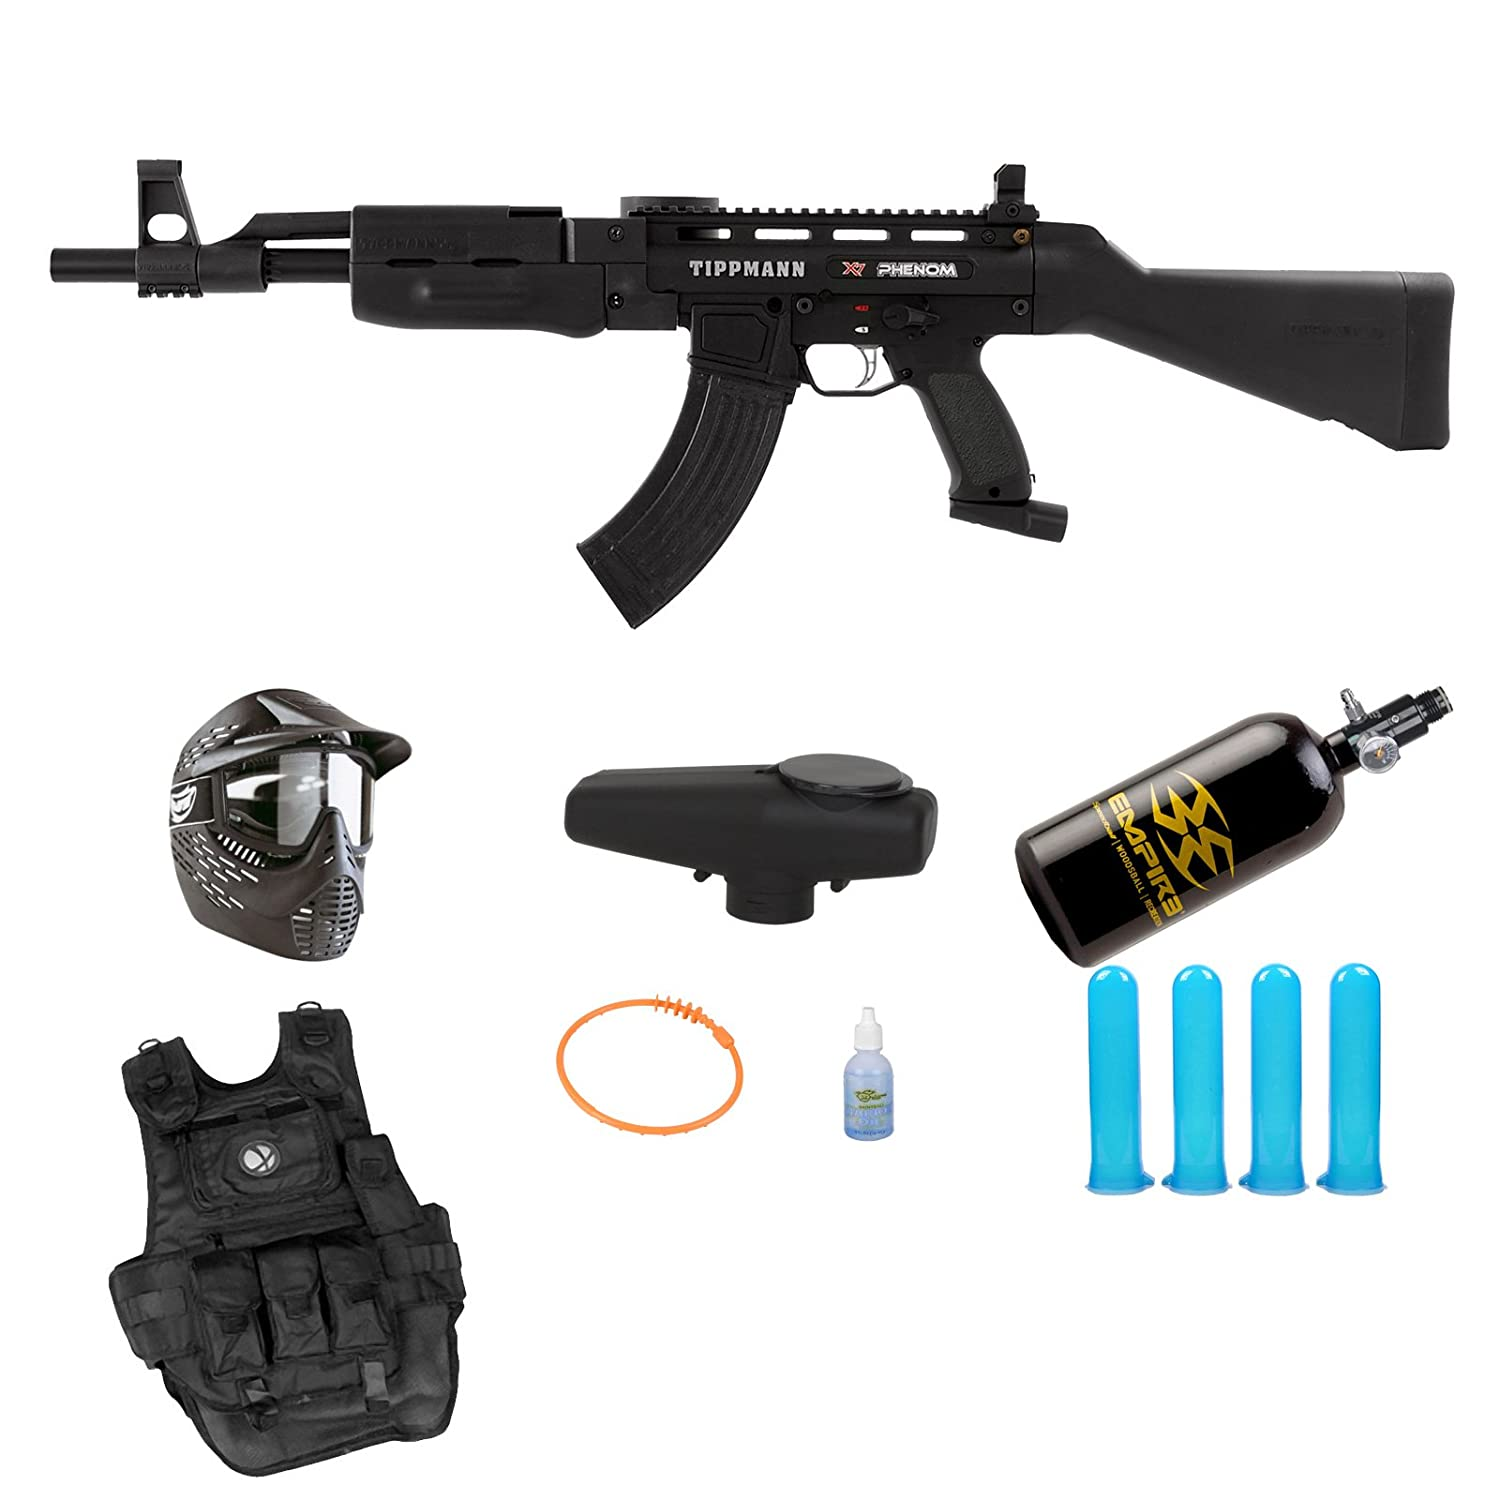 Tippmann X7 X-7 Phenom AK47 Mechanical Paintball Gun HPA N2 Prime Pack jessica phenom цветное покрытие vivid colour exquisite 36 15 мл